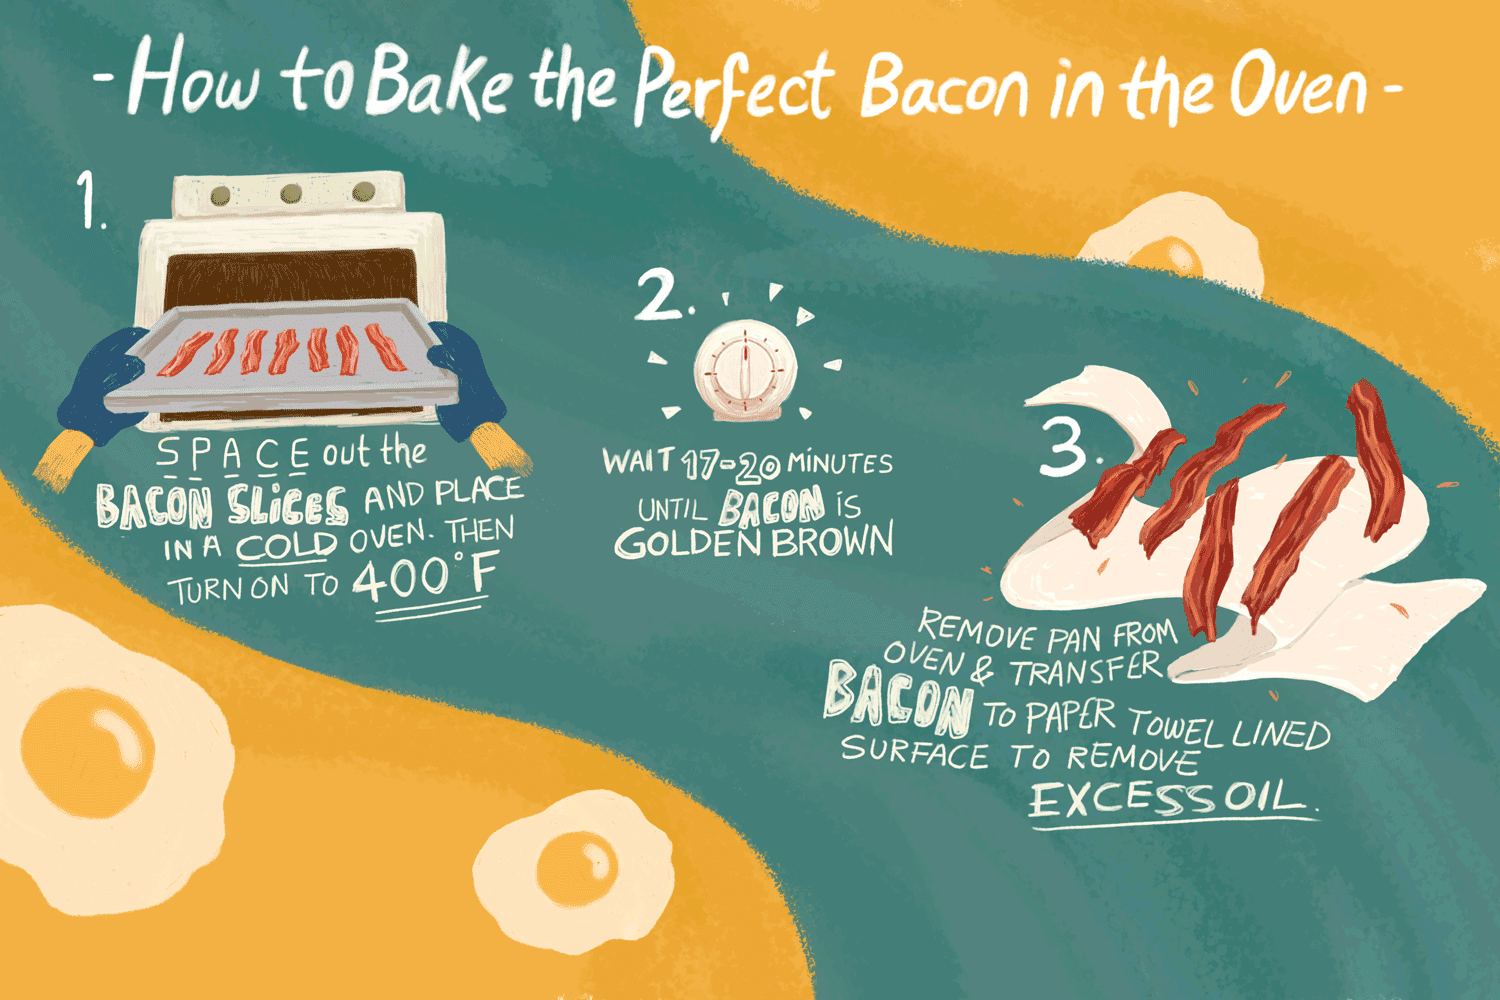 how to bake perfect bacon illustration